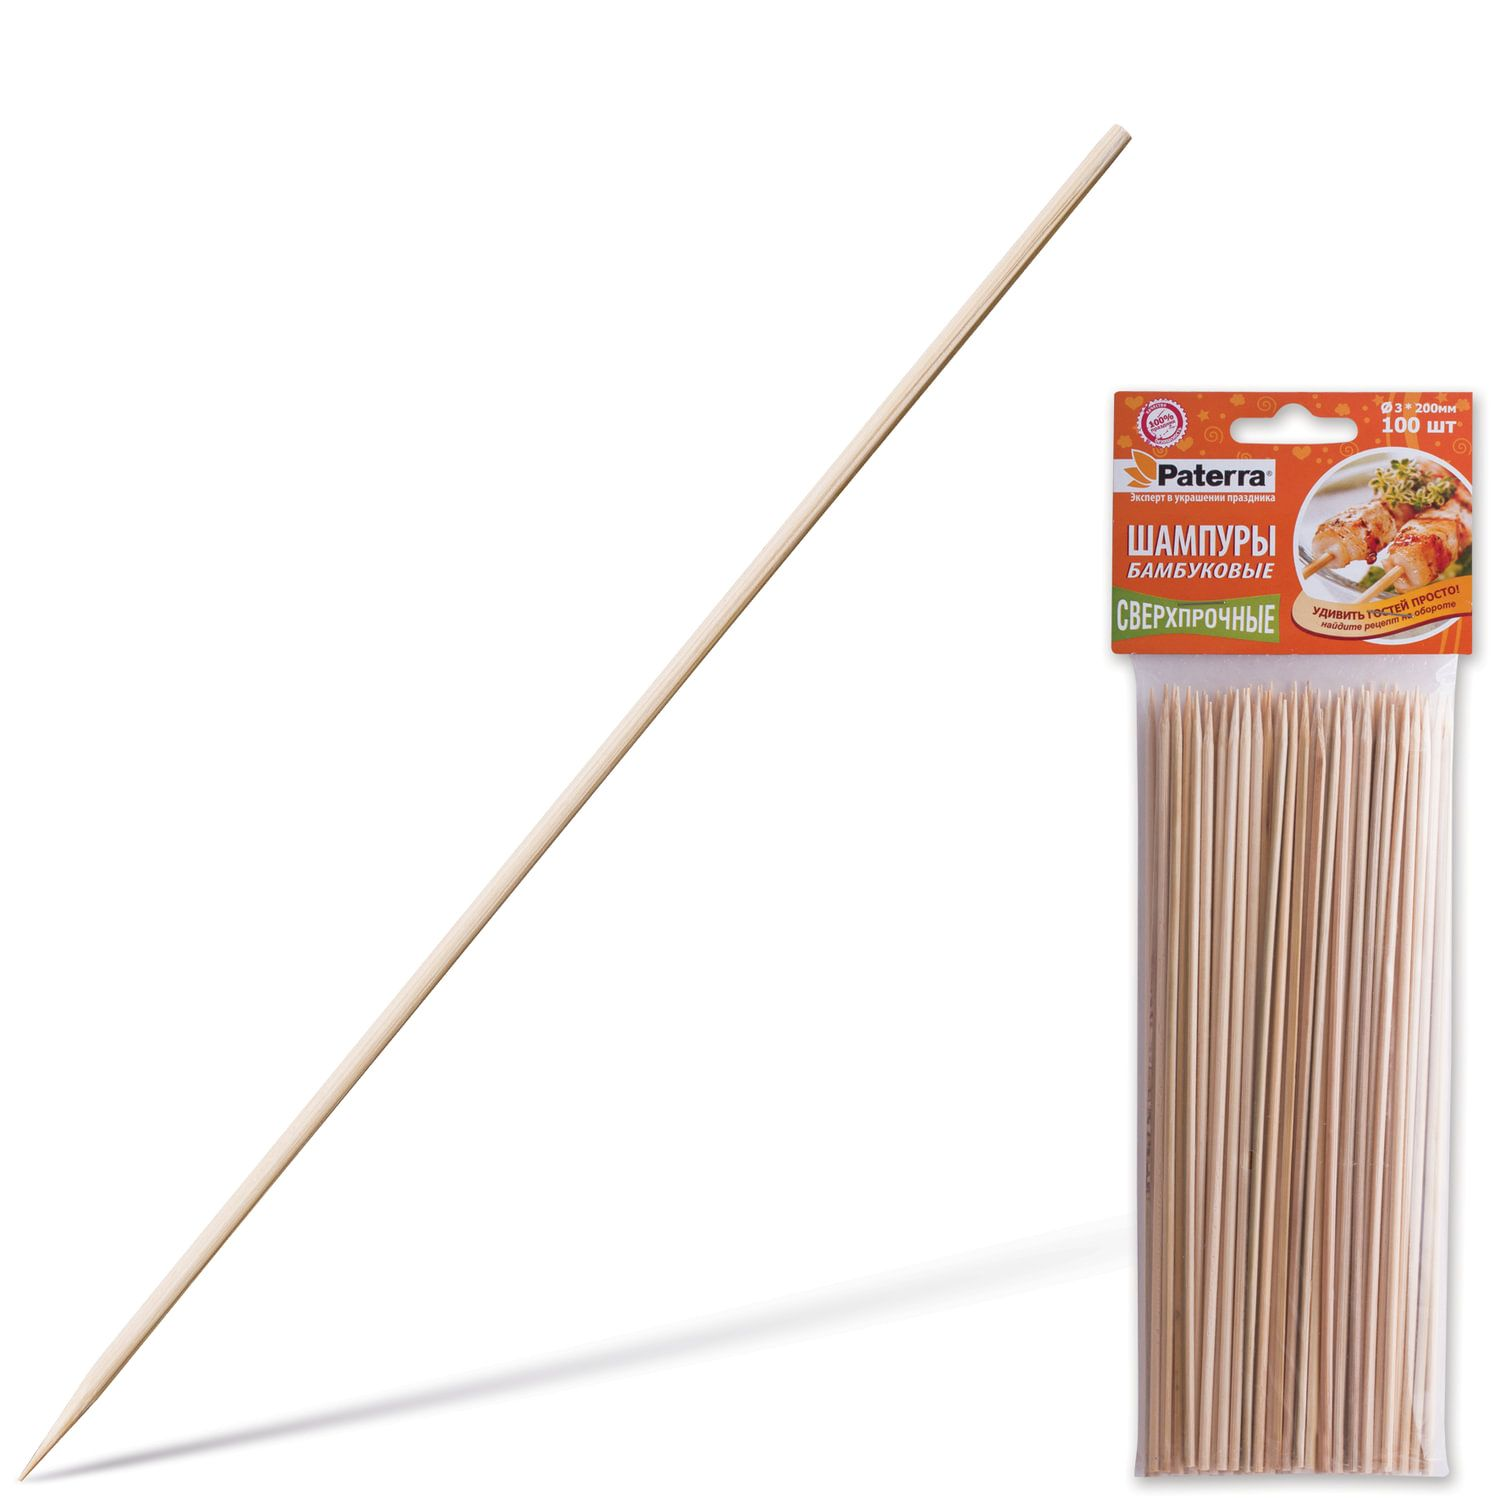 PATERRA / Bamboo skewers for barbecue, 200 mm, d = 3 mm, SET 100 pcs.